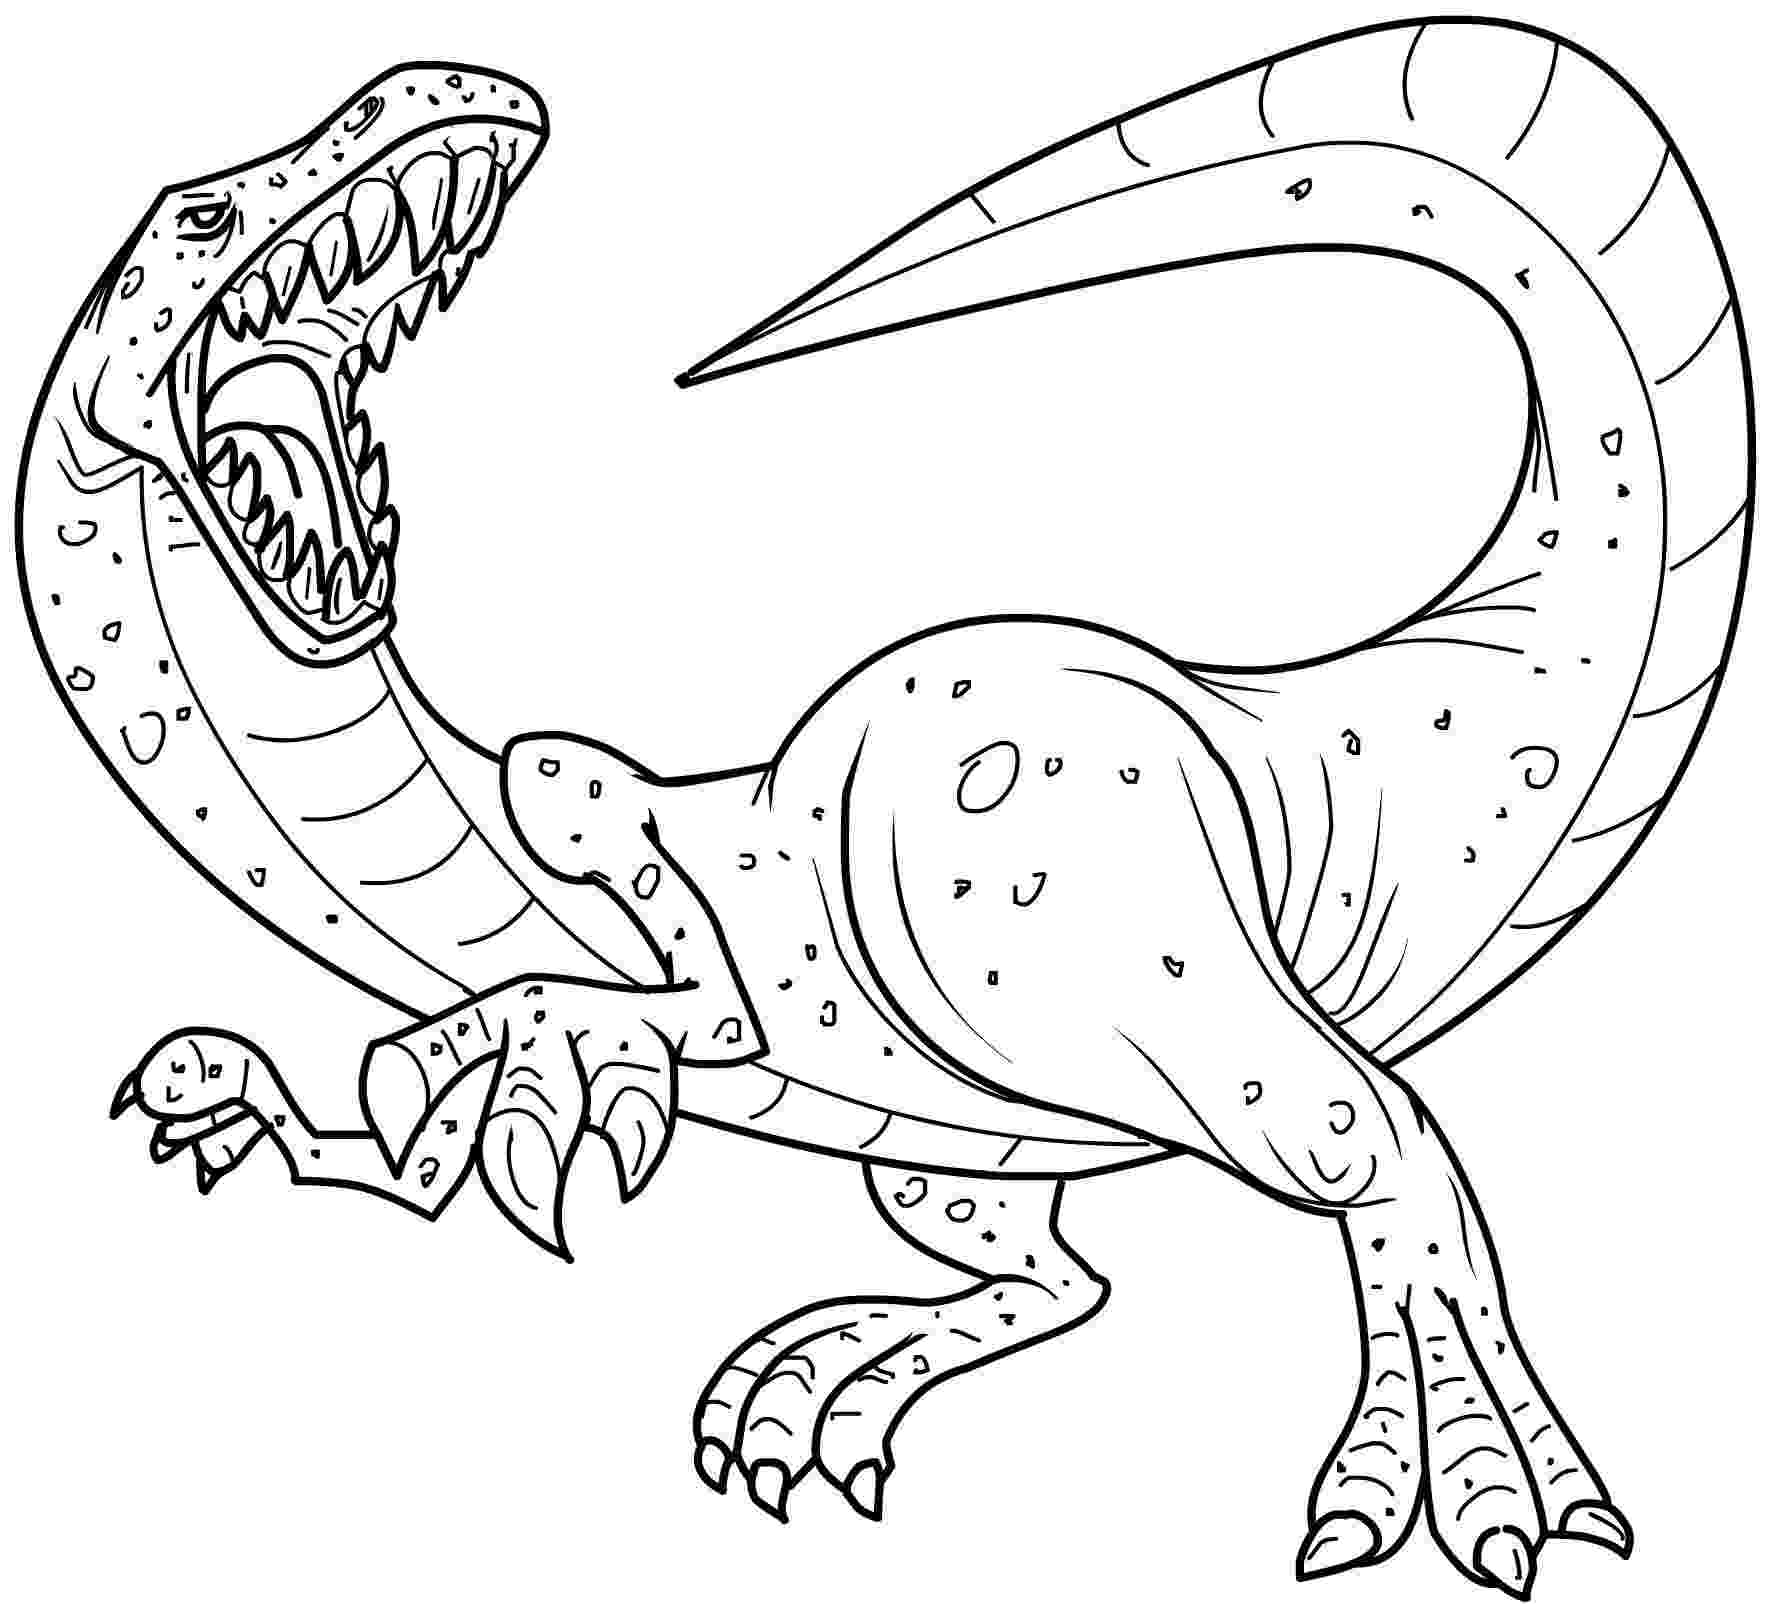 dinosaurs for coloring dinosaur colouring pages in the playroom dinosaurs coloring for